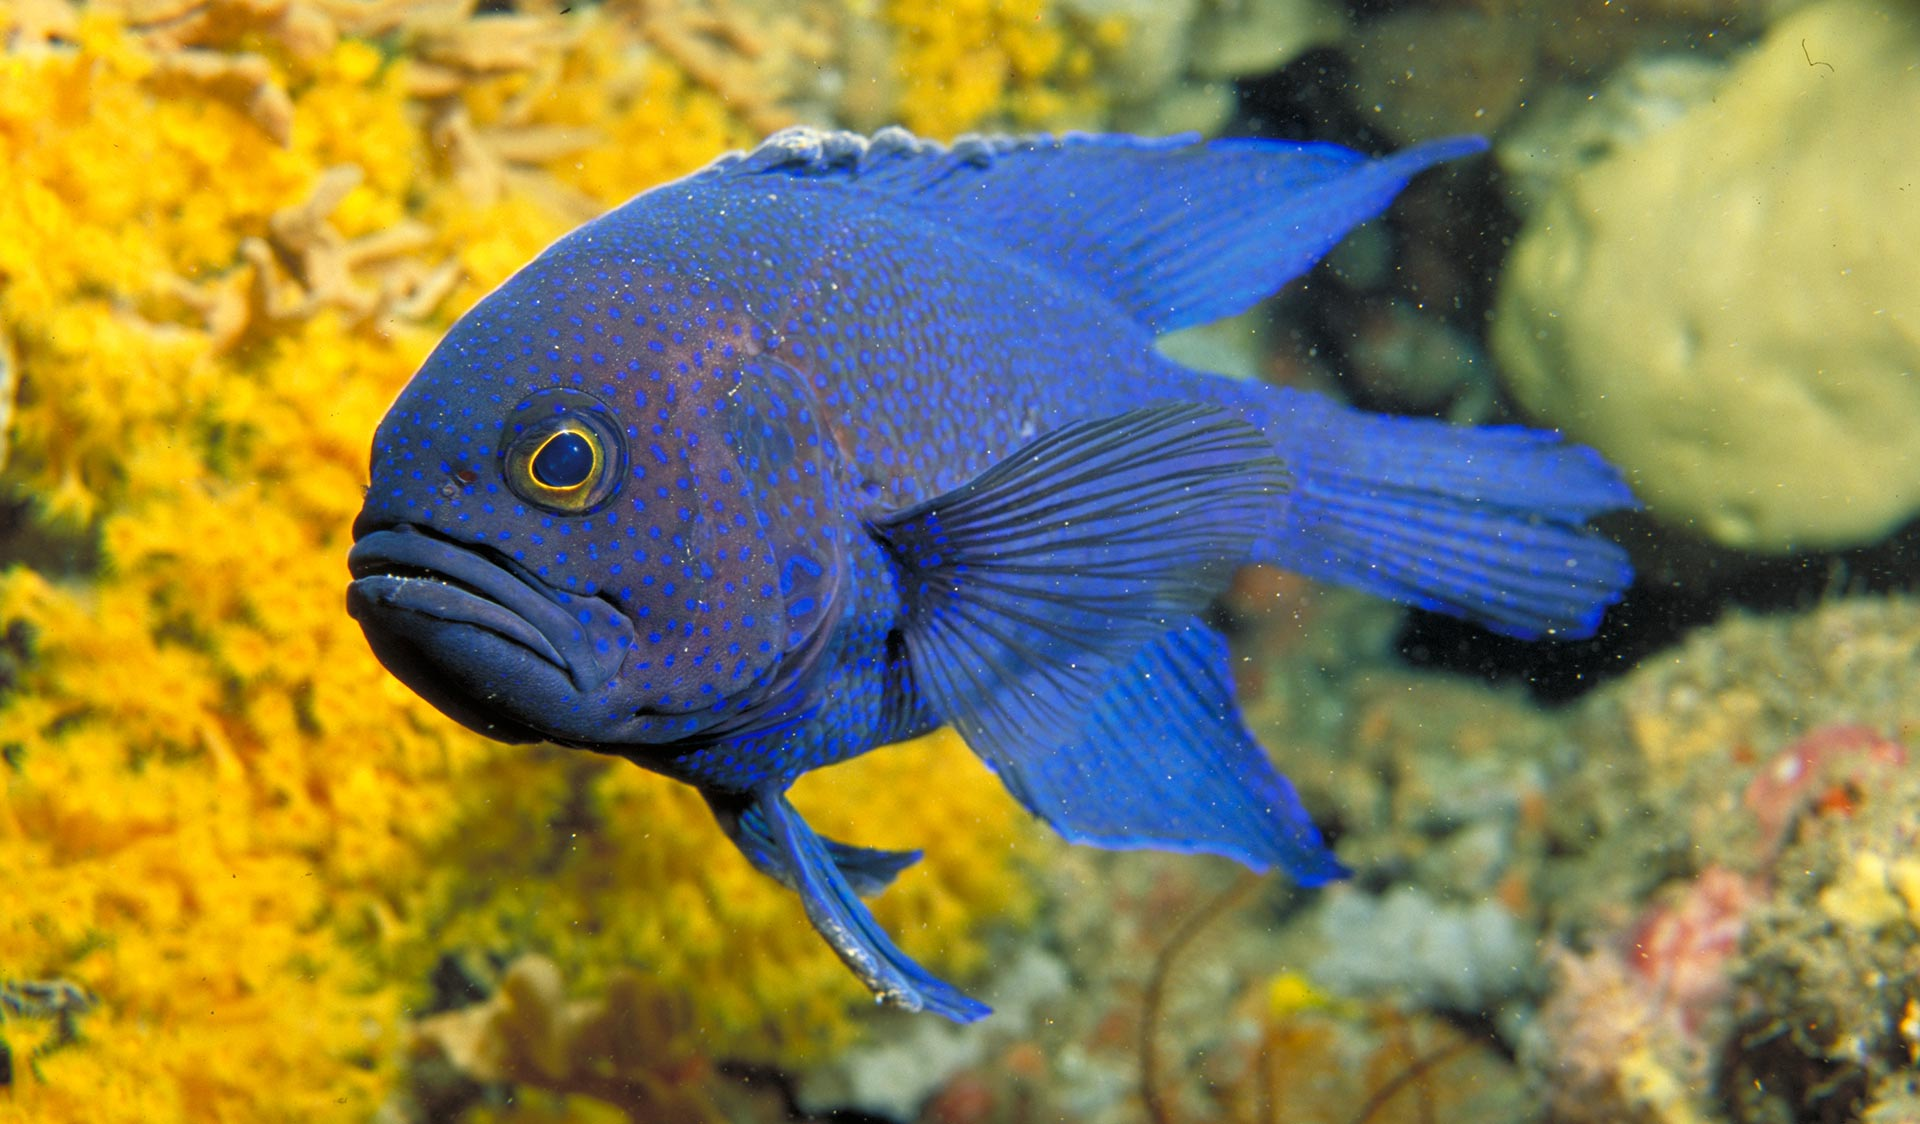 A blue devil fish pictured in front of some yellow coral.